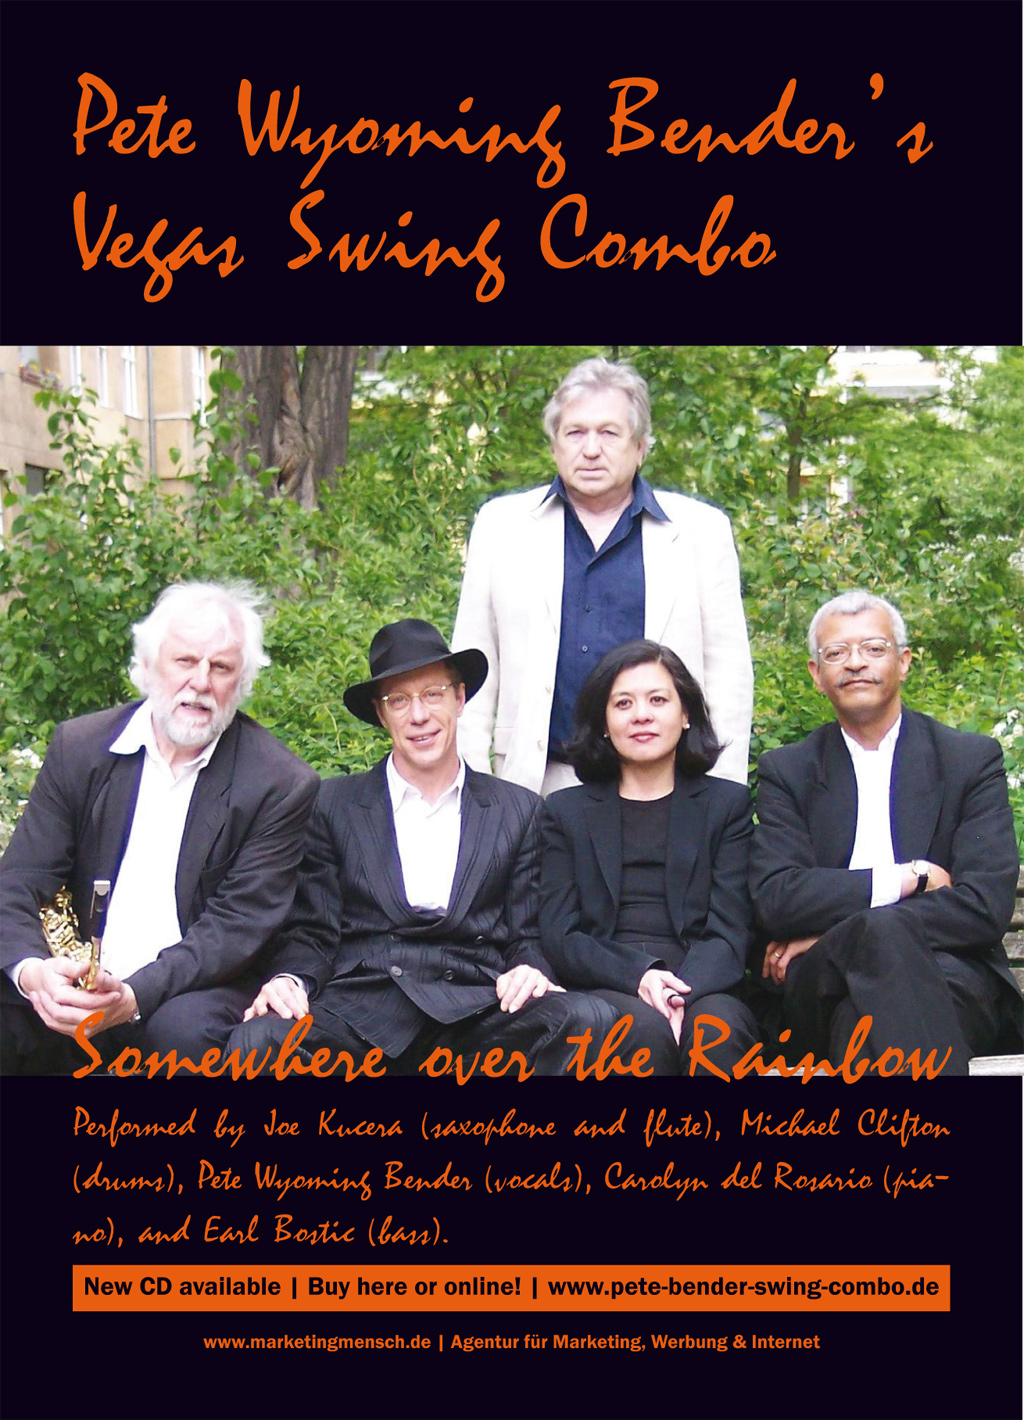 Flyer und Plakat Pete Wyoming Bender's Vegas Swing Combo